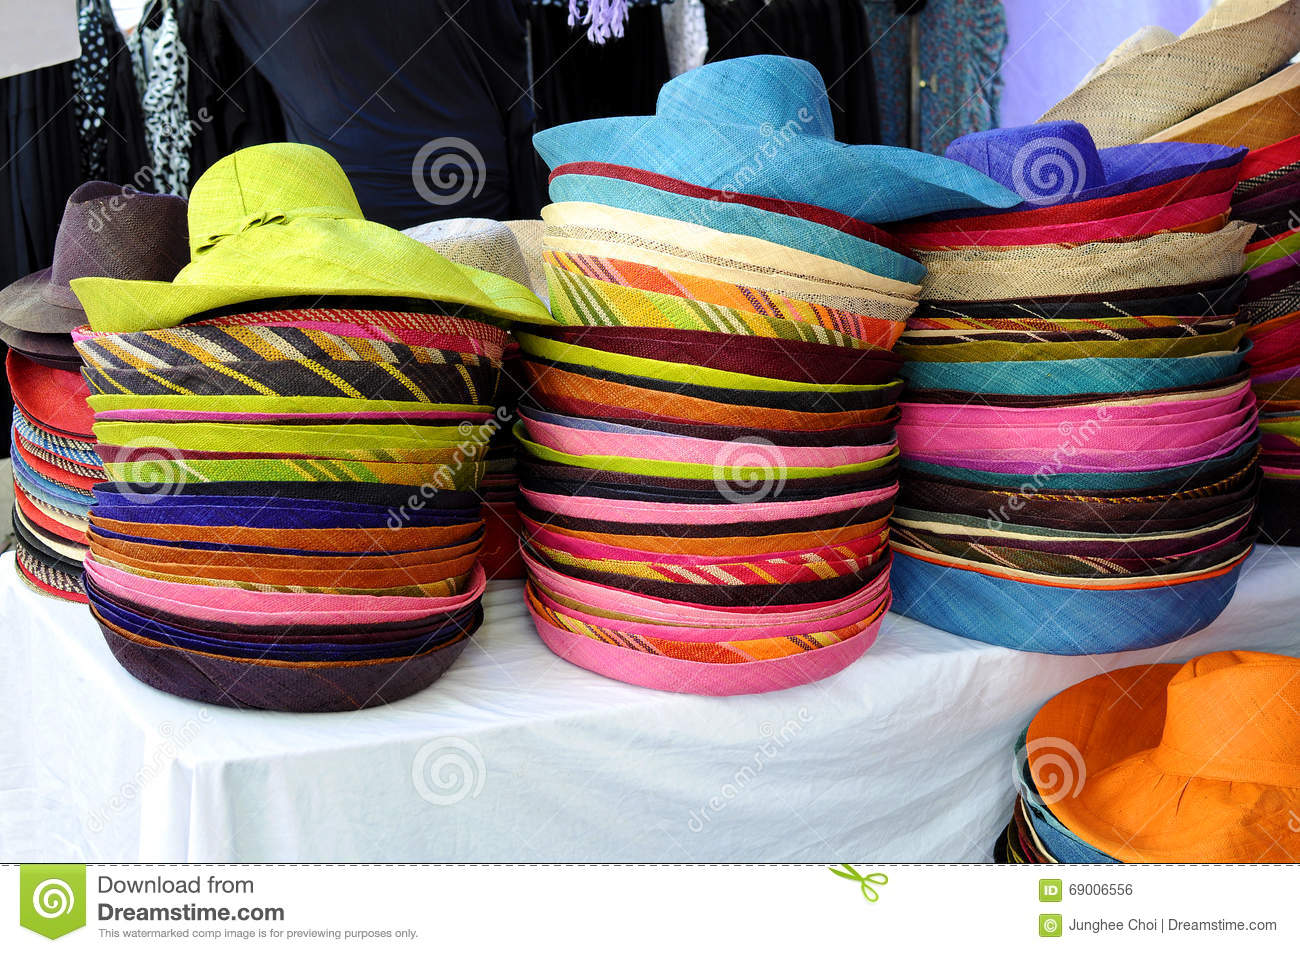 fb07c84c60a07 Stack Of Colorful Straw Hats In Market Stall Stock Photo - Image of ...